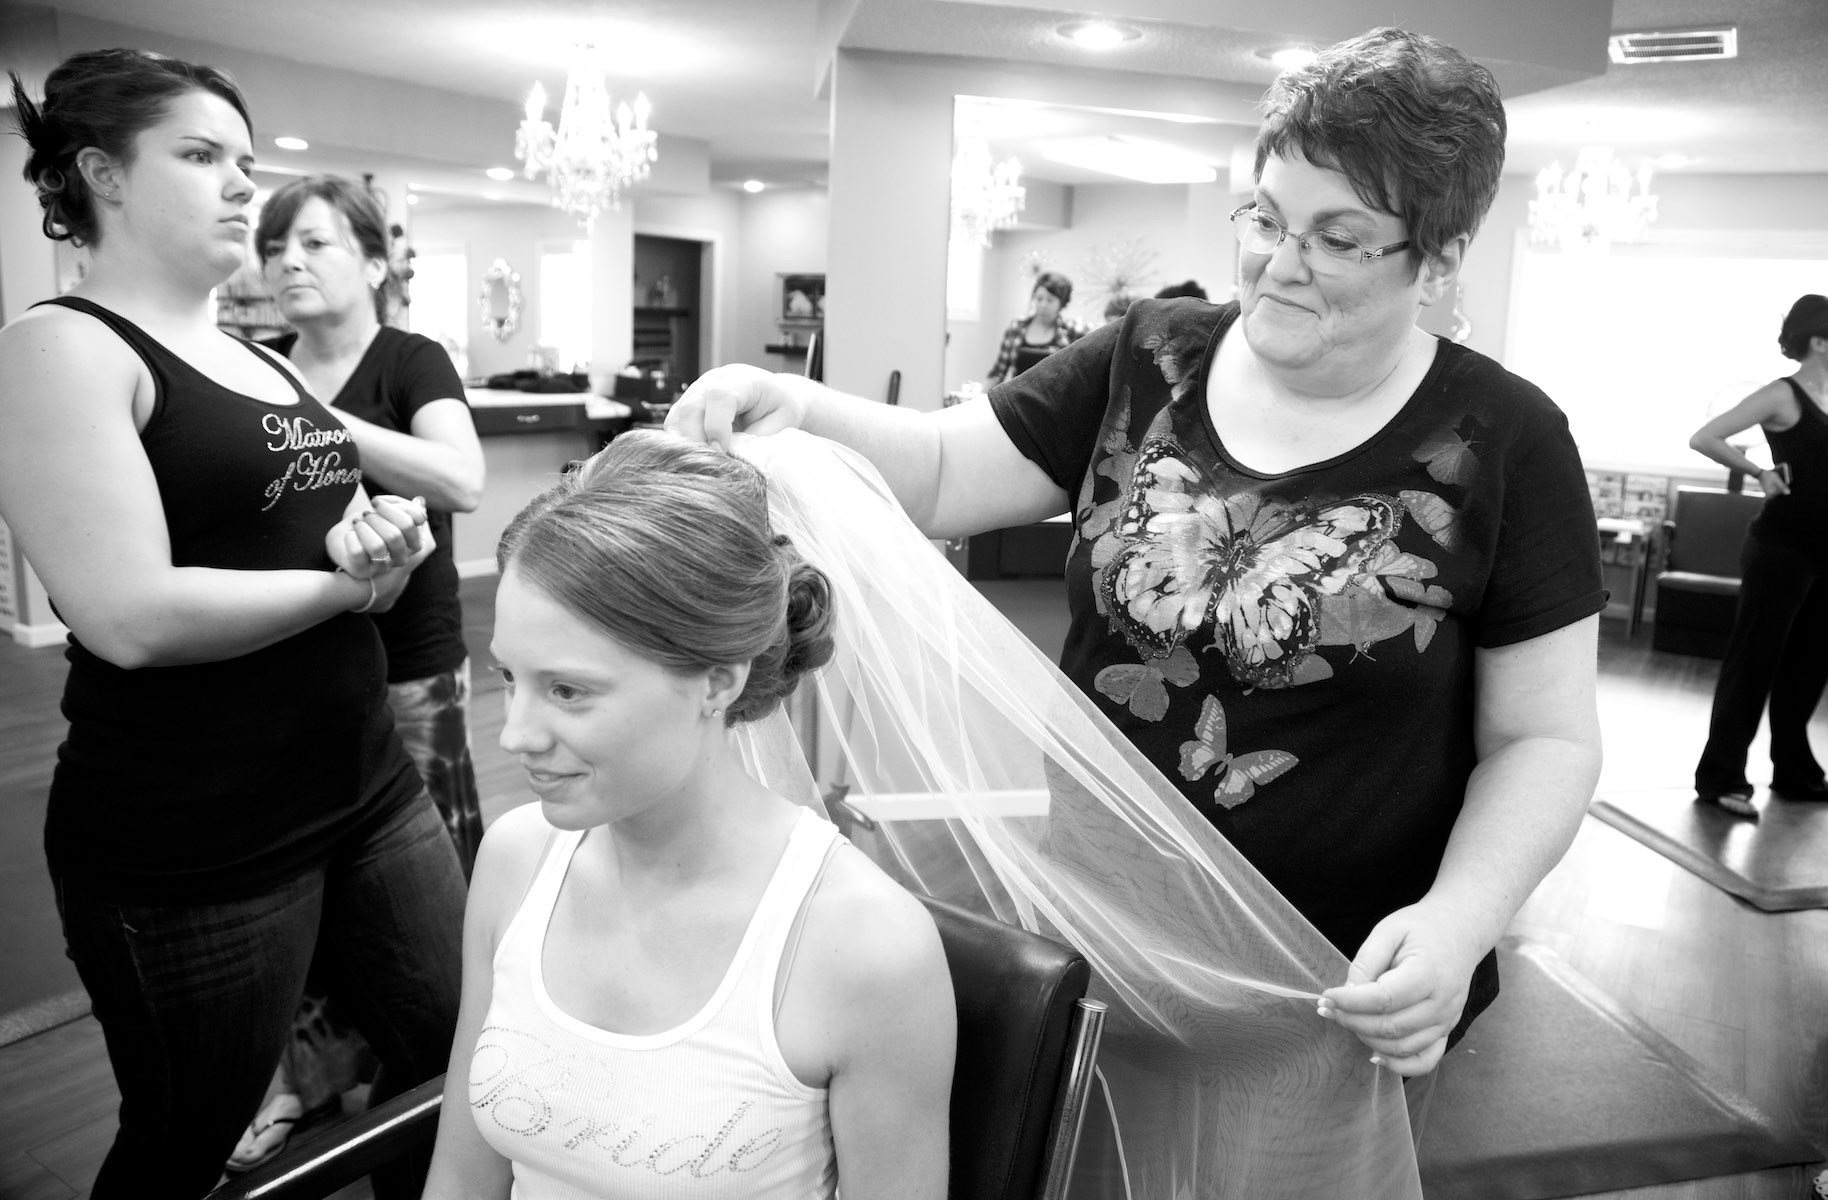 Amanda's mom fastens the veil as Amanda and her bridesmaids get ready at A Hair Company beauty salon in Jacksonville. Wedding photography by Steve & Tiffany Warmowski.